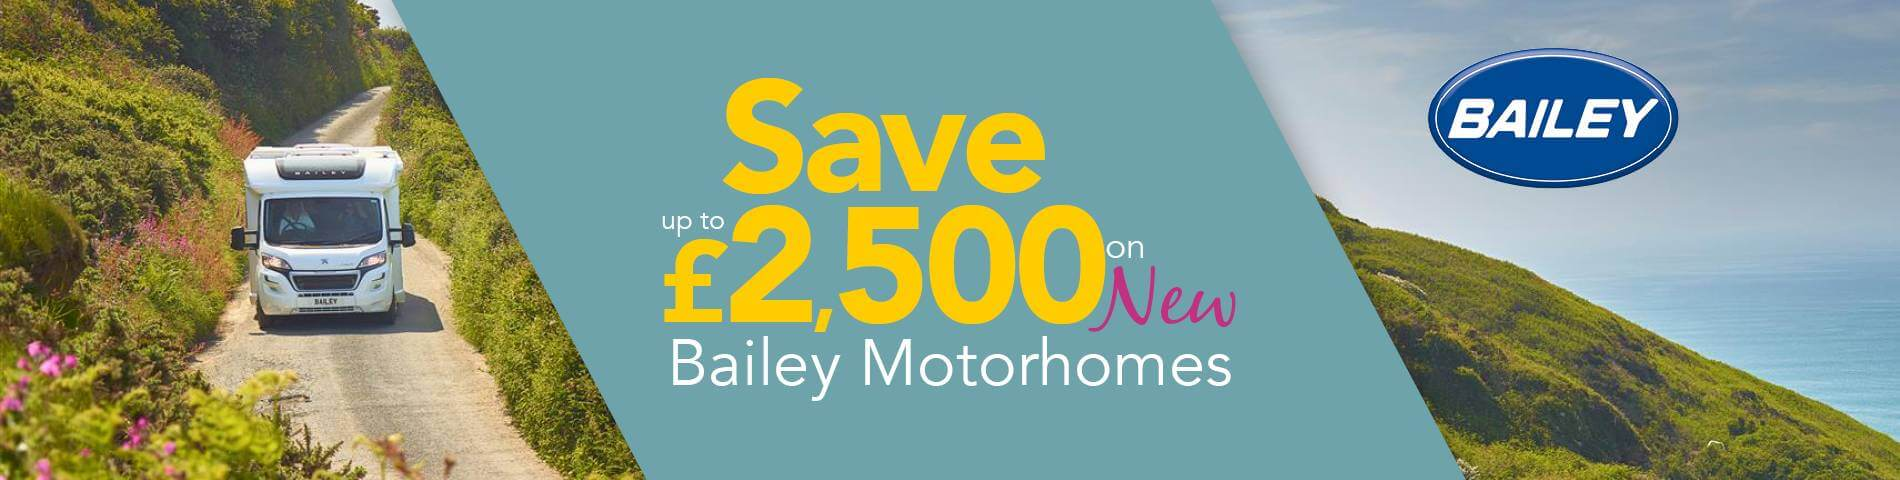 Bailey Motorhomes Reductions